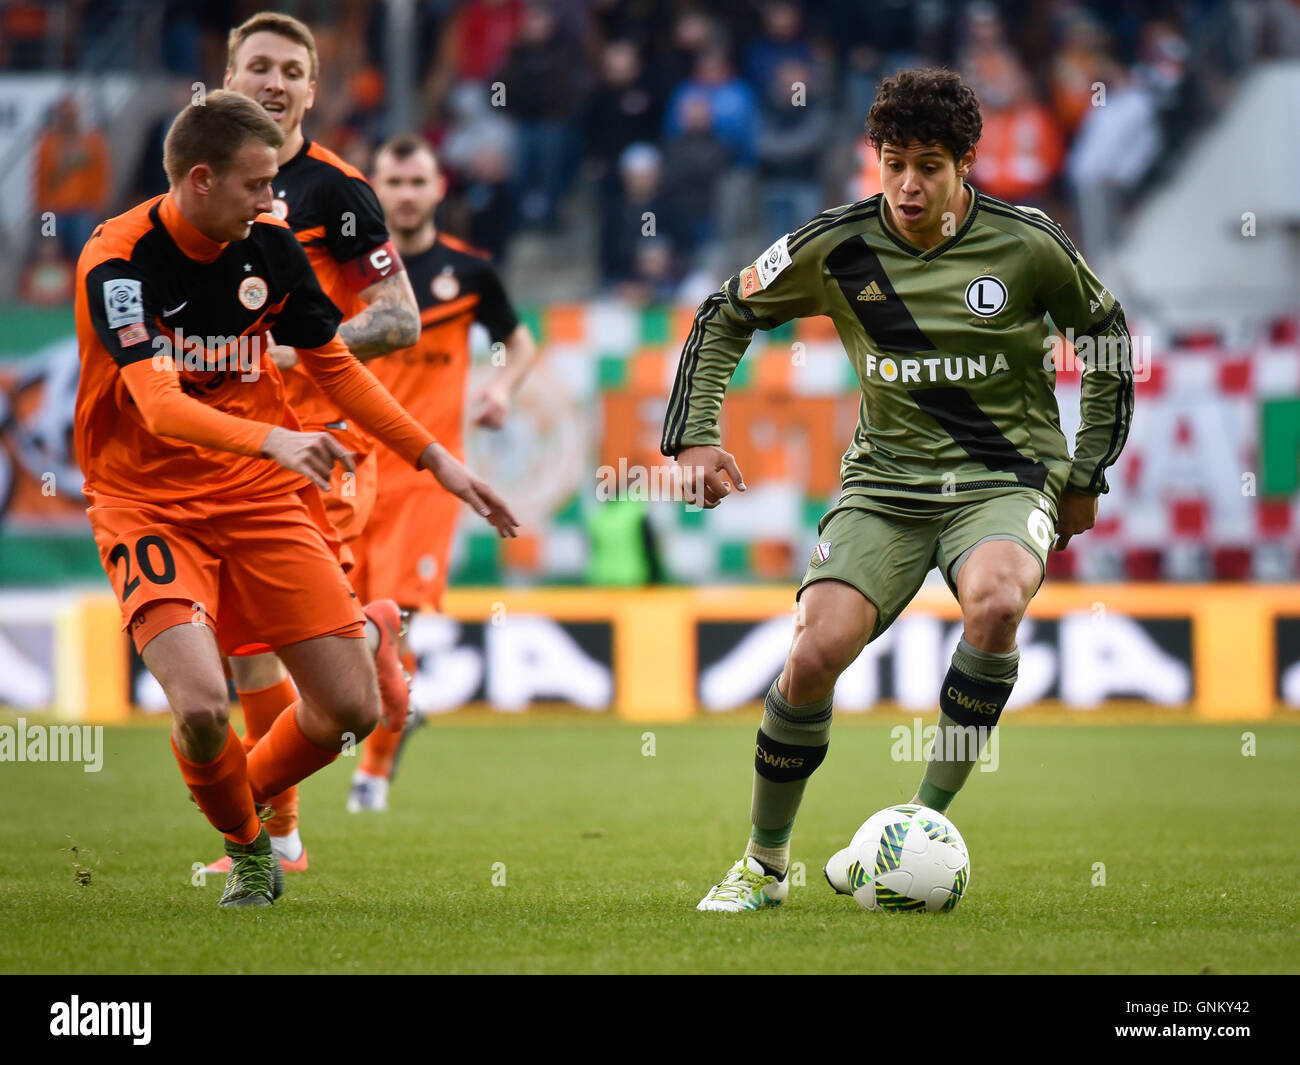 LUBIN, POLAND - APRIL 28, 2016: Match Polish Premer League between KGHM Zaglebie Lubin - Legia Warszawa 2:0. - Stock Image